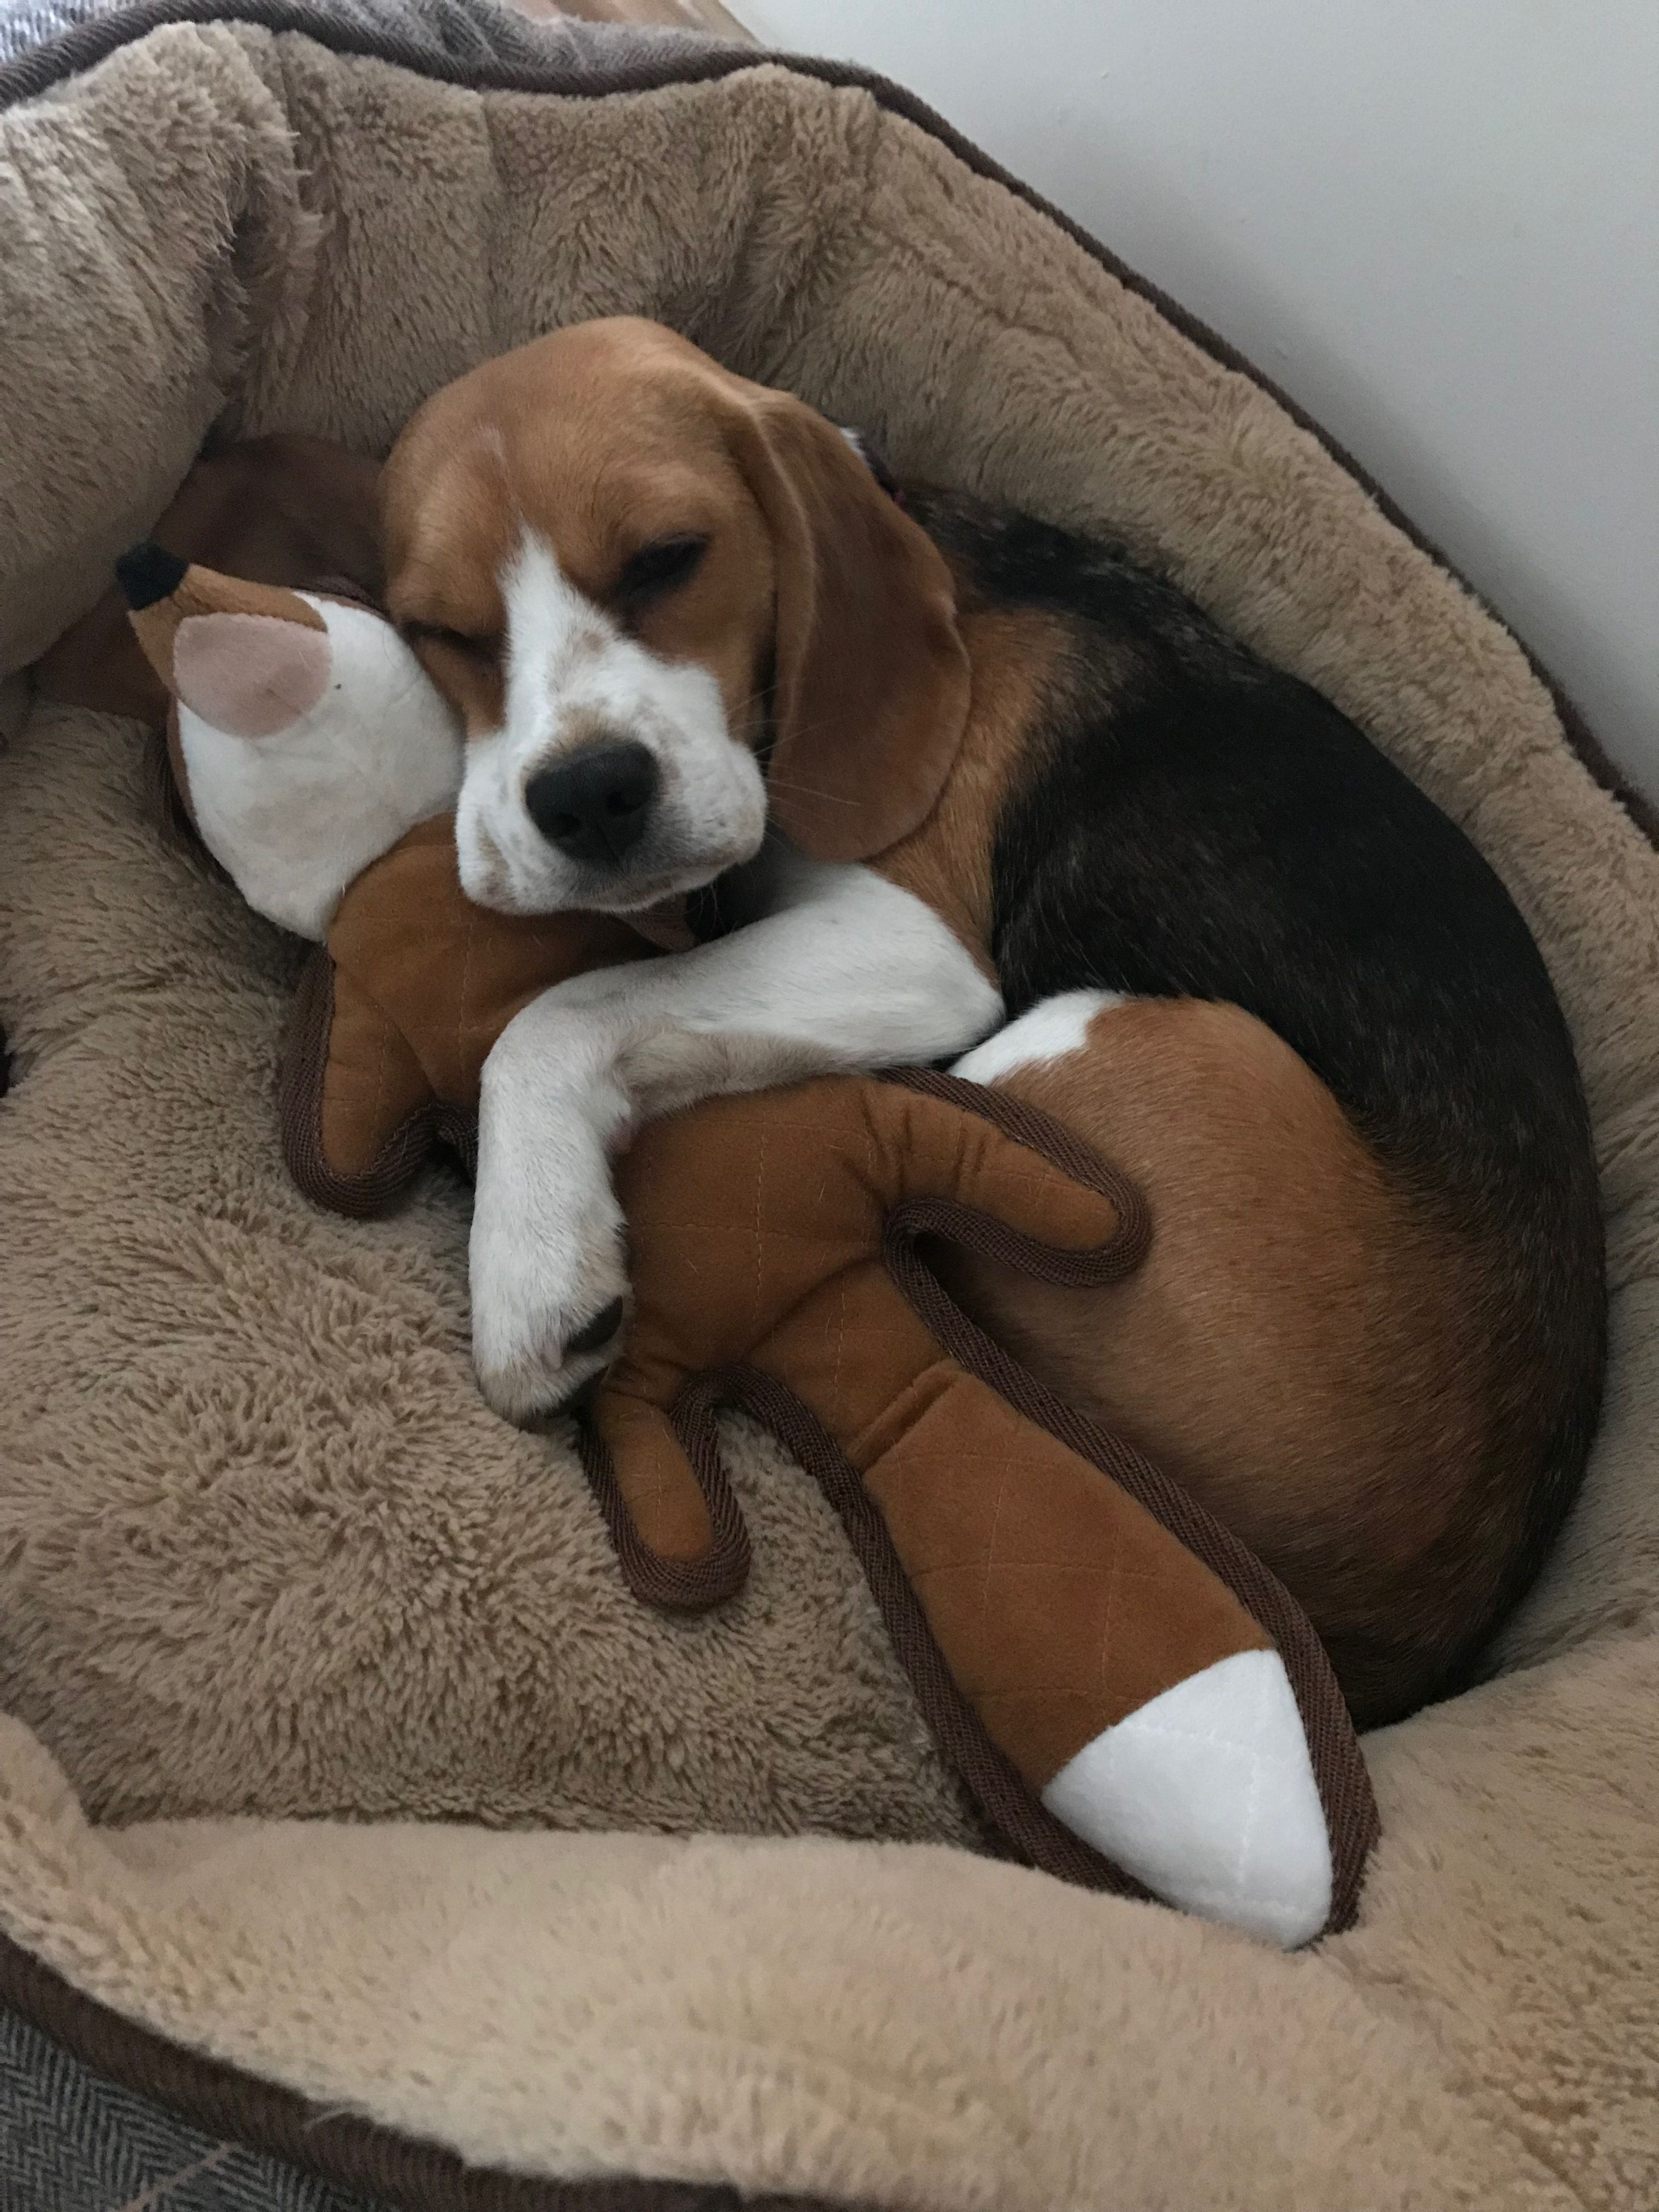 A real good sleep with my friend dogwithpuppypictures